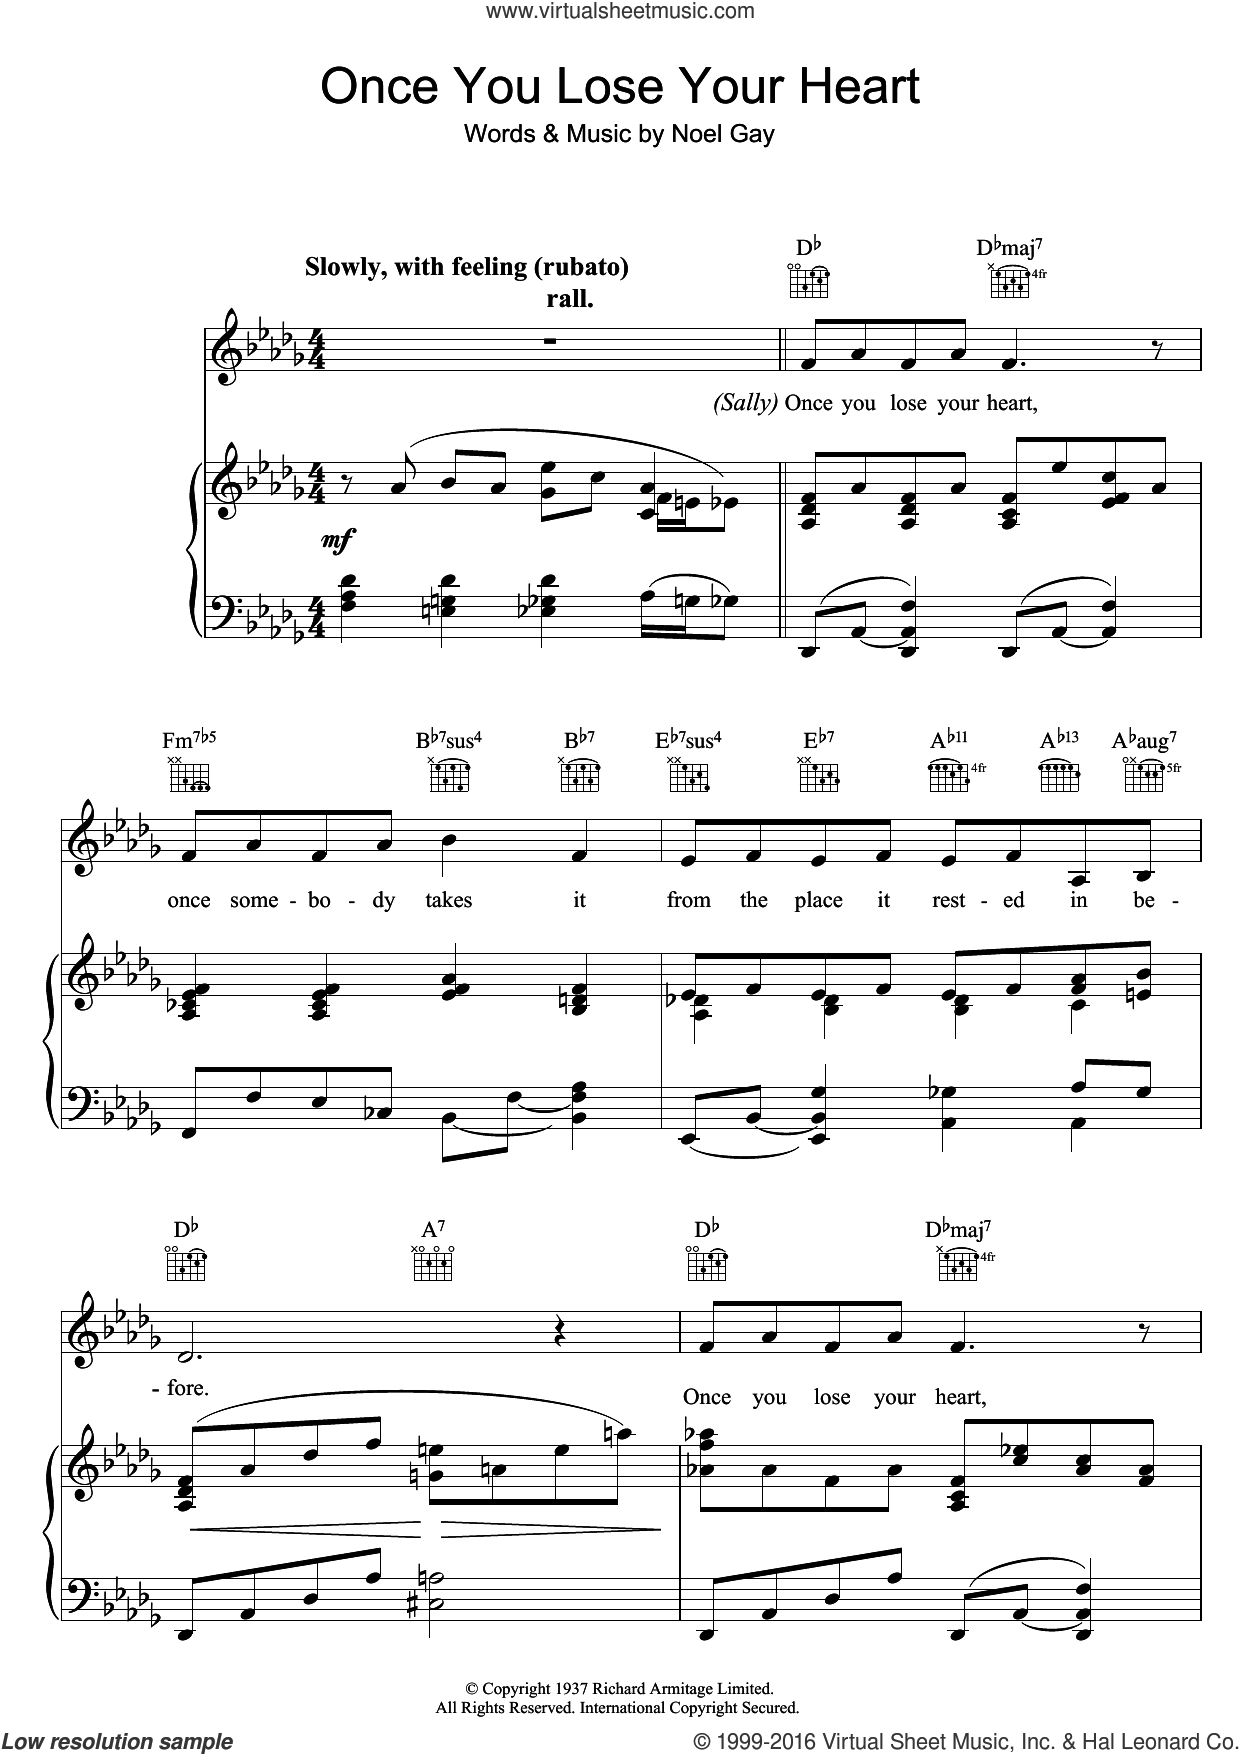 Once You Lose Your Heart (from Me And My Girl) sheet music for voice, piano or guitar by Noel Gay, intermediate skill level